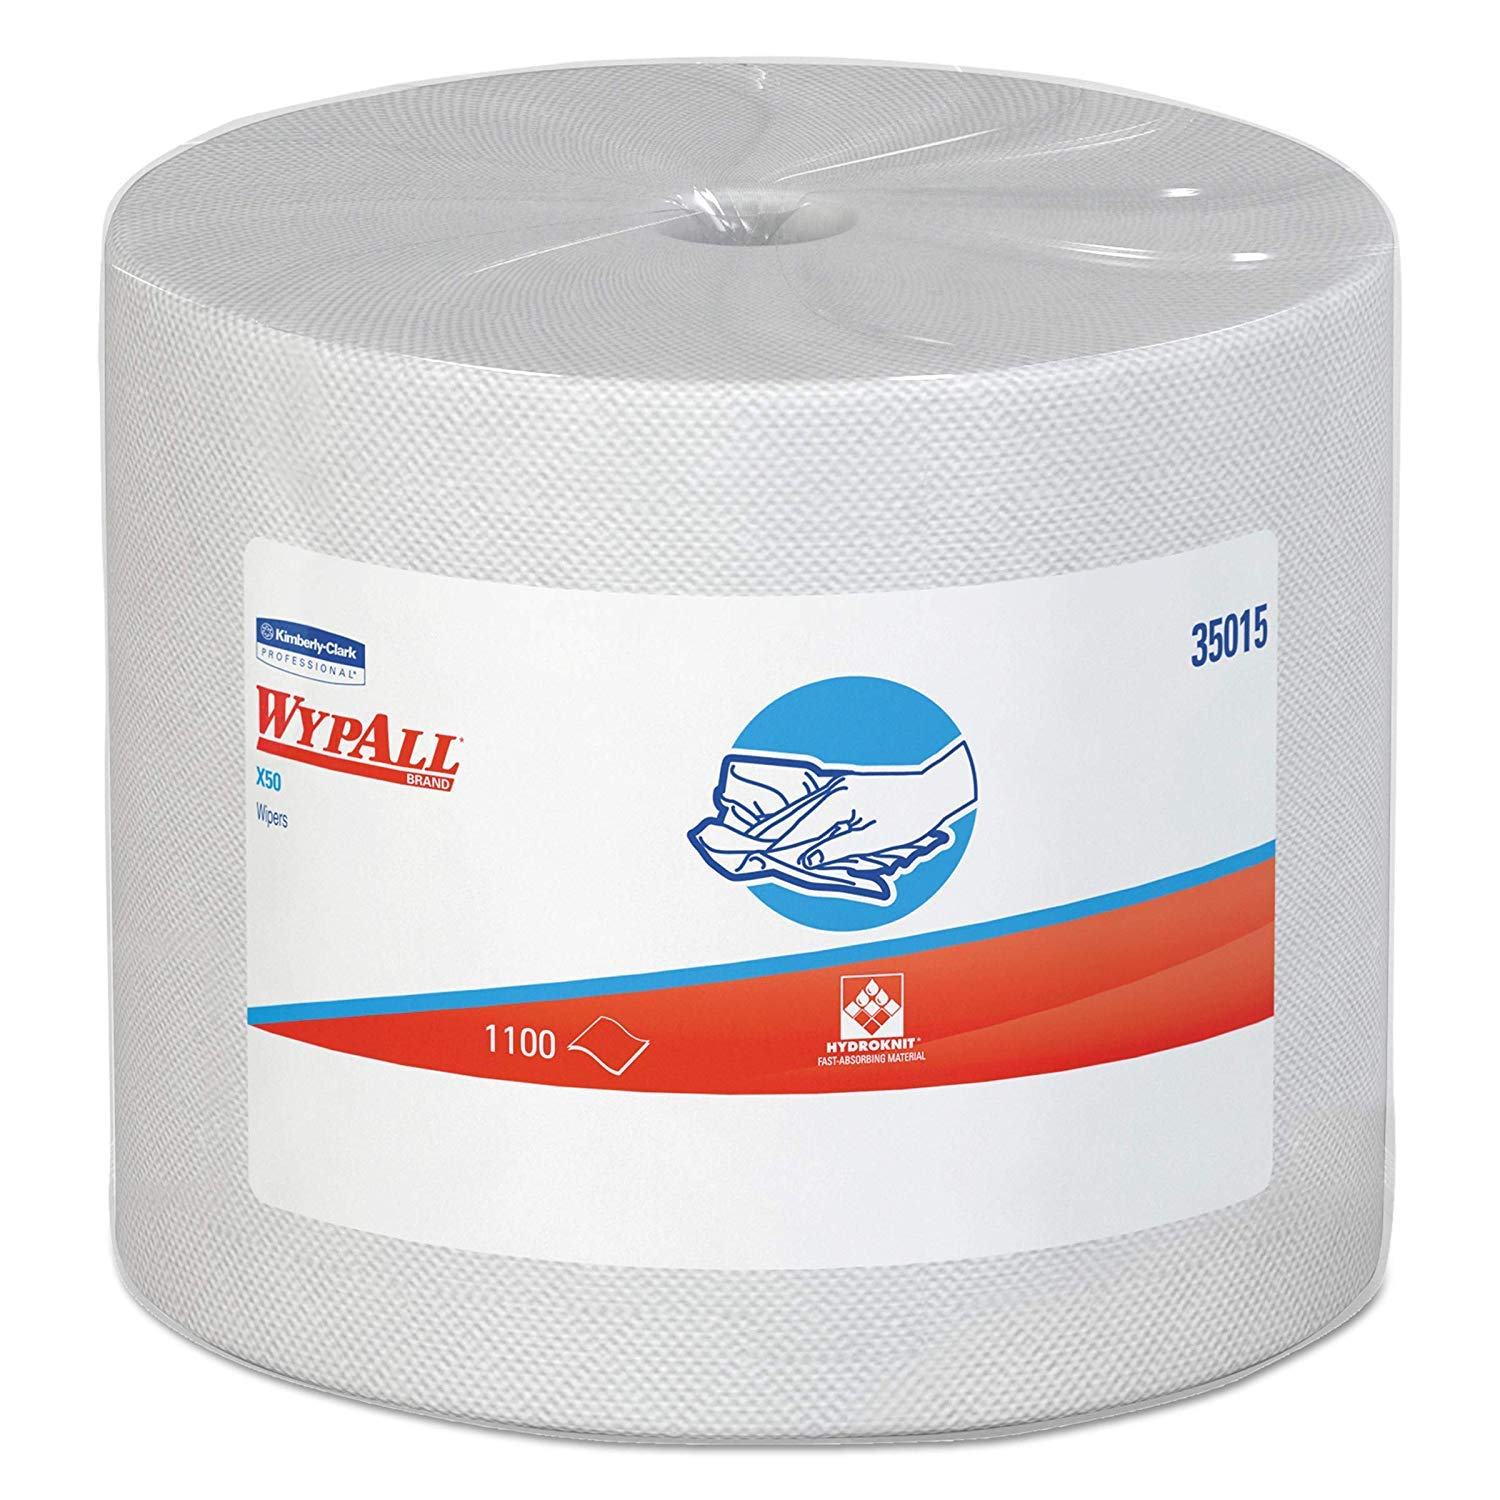 Wypall X50 Cloths, Jumbo Roll, 9 4/5 x 13 2/5, White, 1100/Roll by Wypall